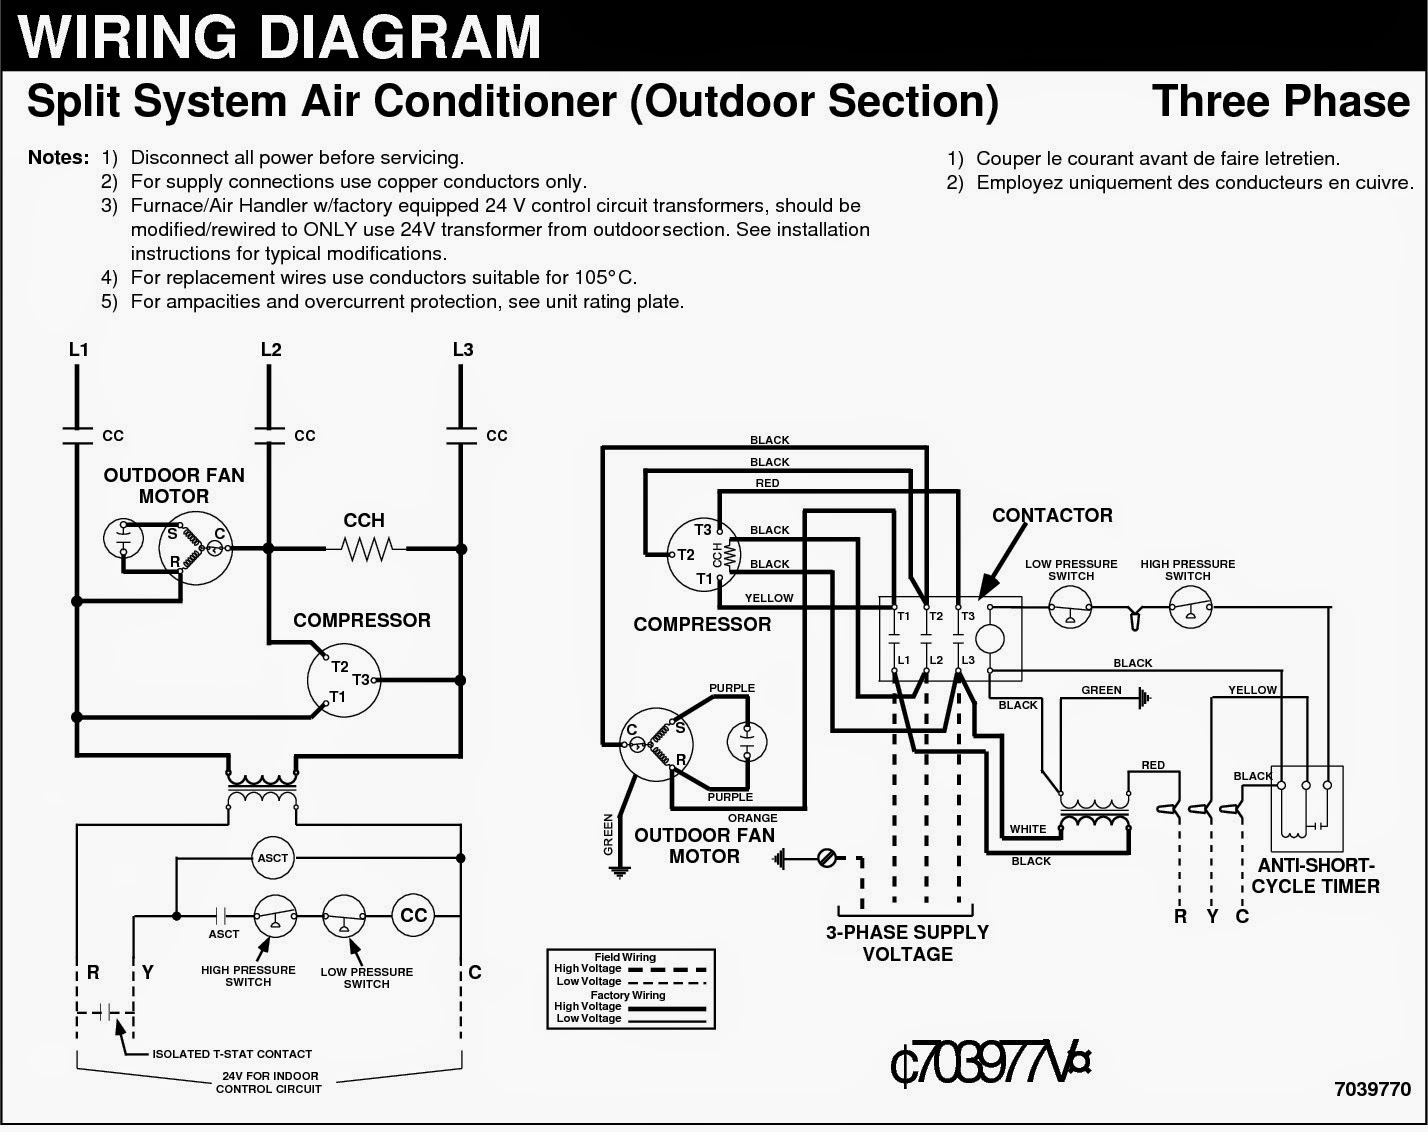 Hvac Systems Last Longer Regular Maintenance in addition Refrigerator  ponents Diagram furthermore T S Diagram For Heat Pump Cycle fig3 280723865 also Thermo Fluid Dynamic Design Of A 4 Way Reversing Valve besides Heat Loss Diagram. on heat pump and refrigeration cycle